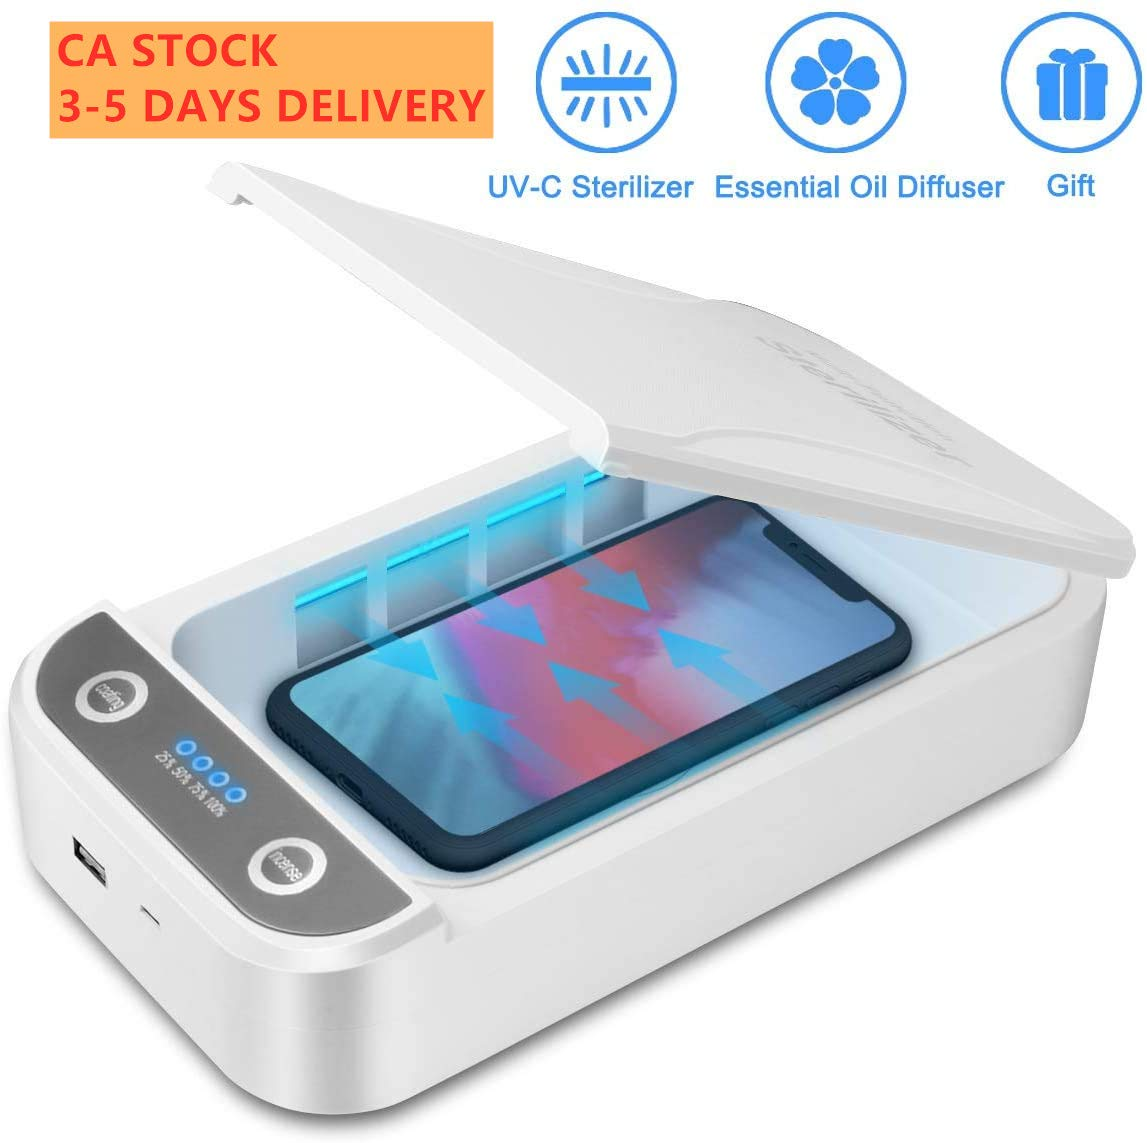 Portable UV Light Cell Phone Sanitizer Cell Phone Disinfector-Blue Phone Sterilizer Smartphone Cleaner with Aromatherapy Function